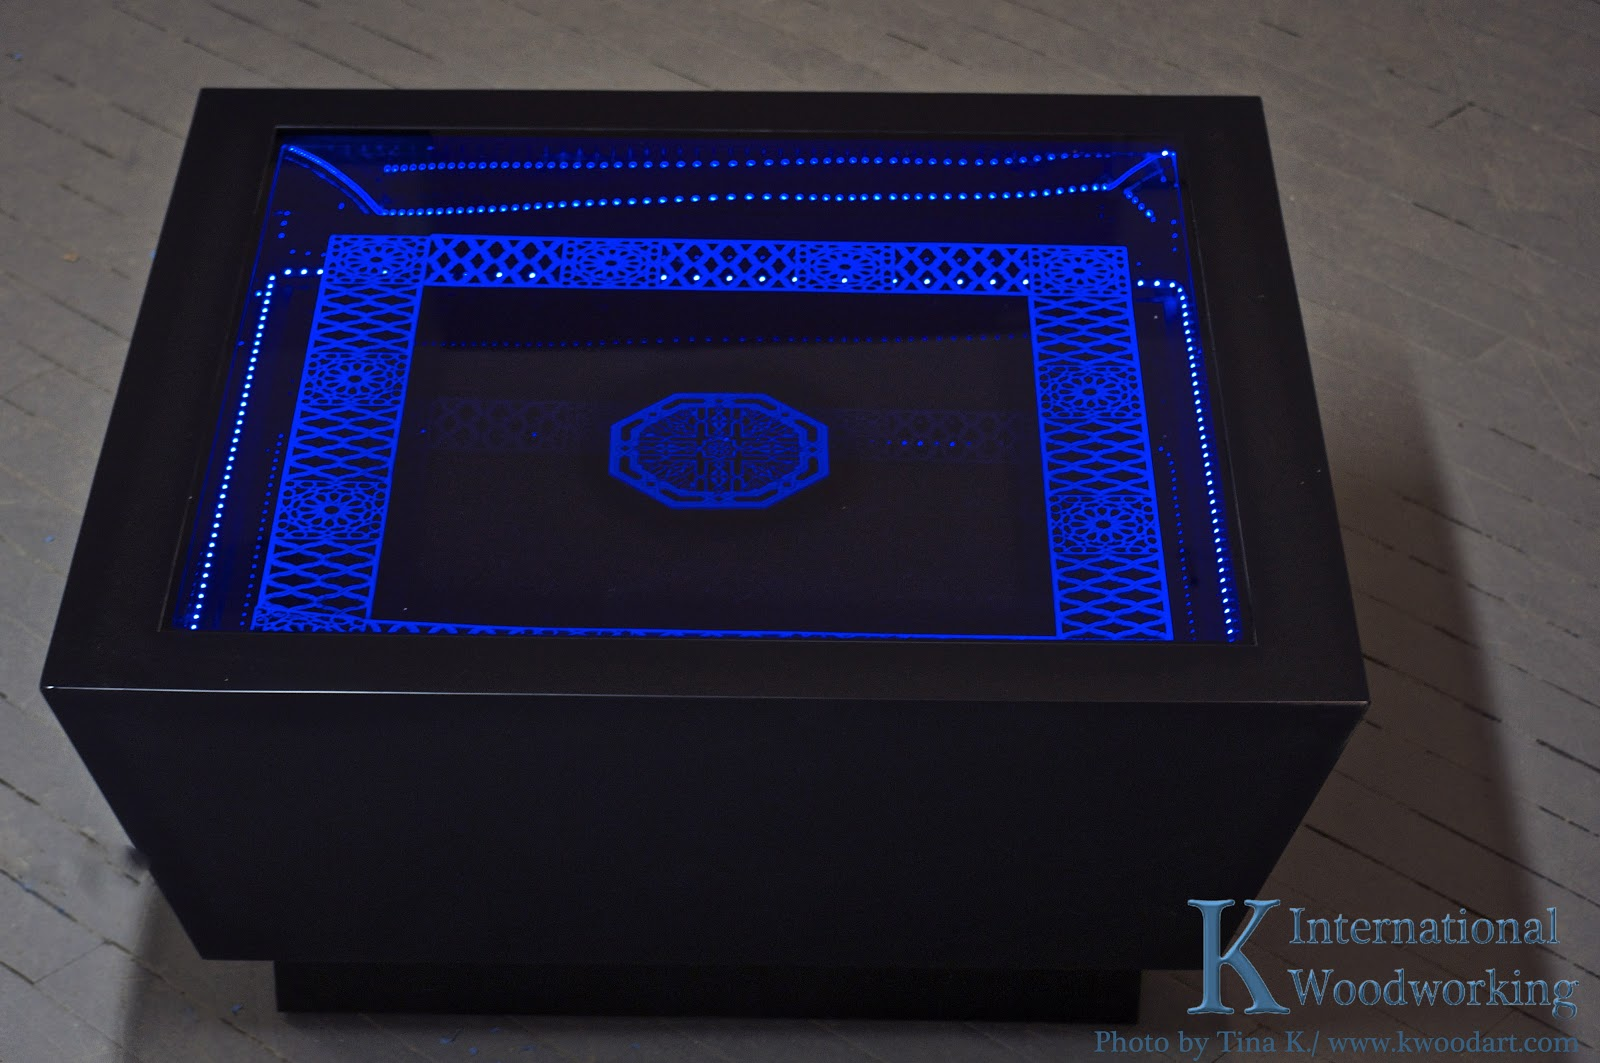 LED Light up Coffee Table | K International Woodworking